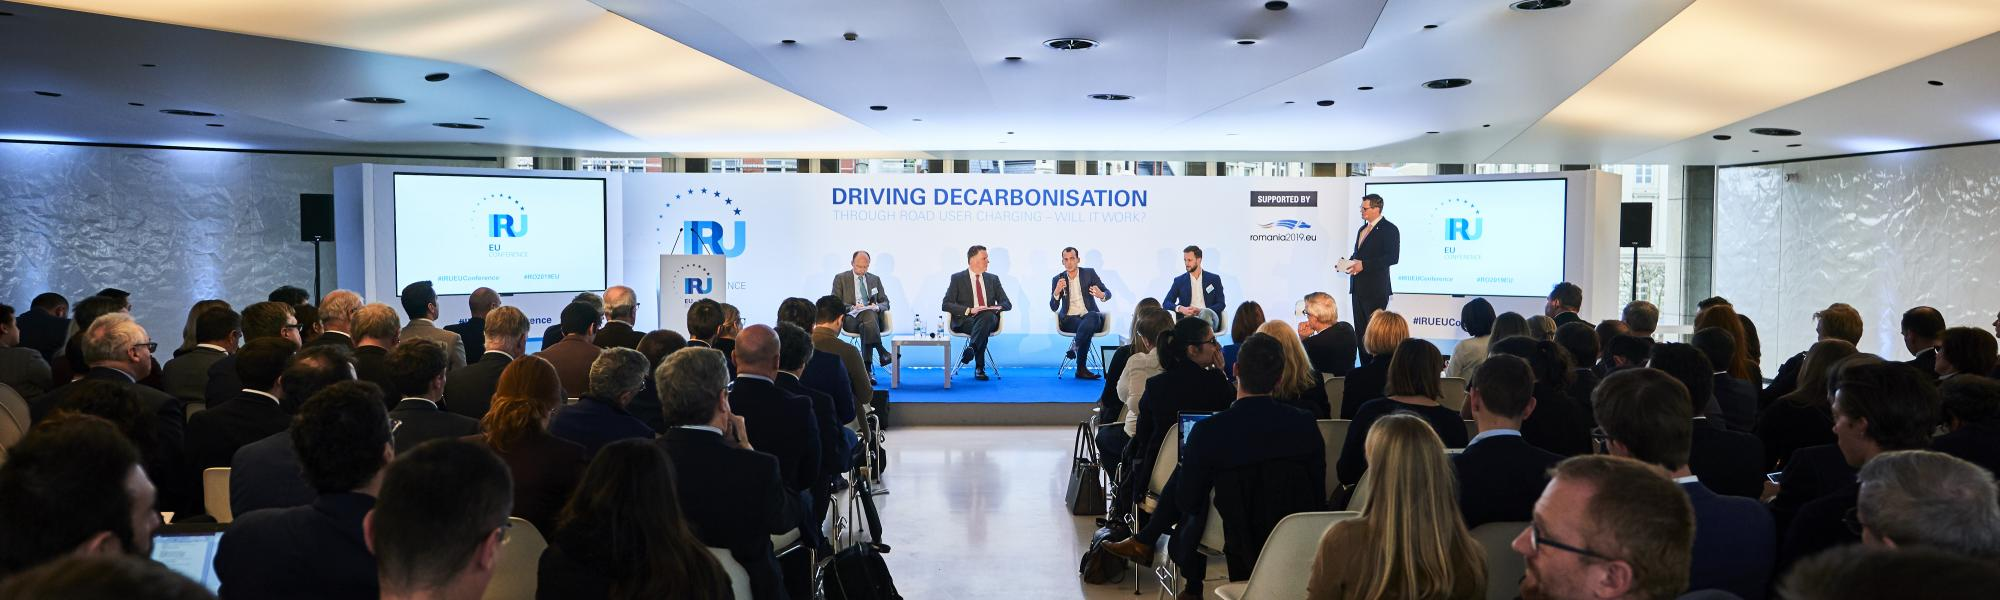 IRU EU Conference 6th edition